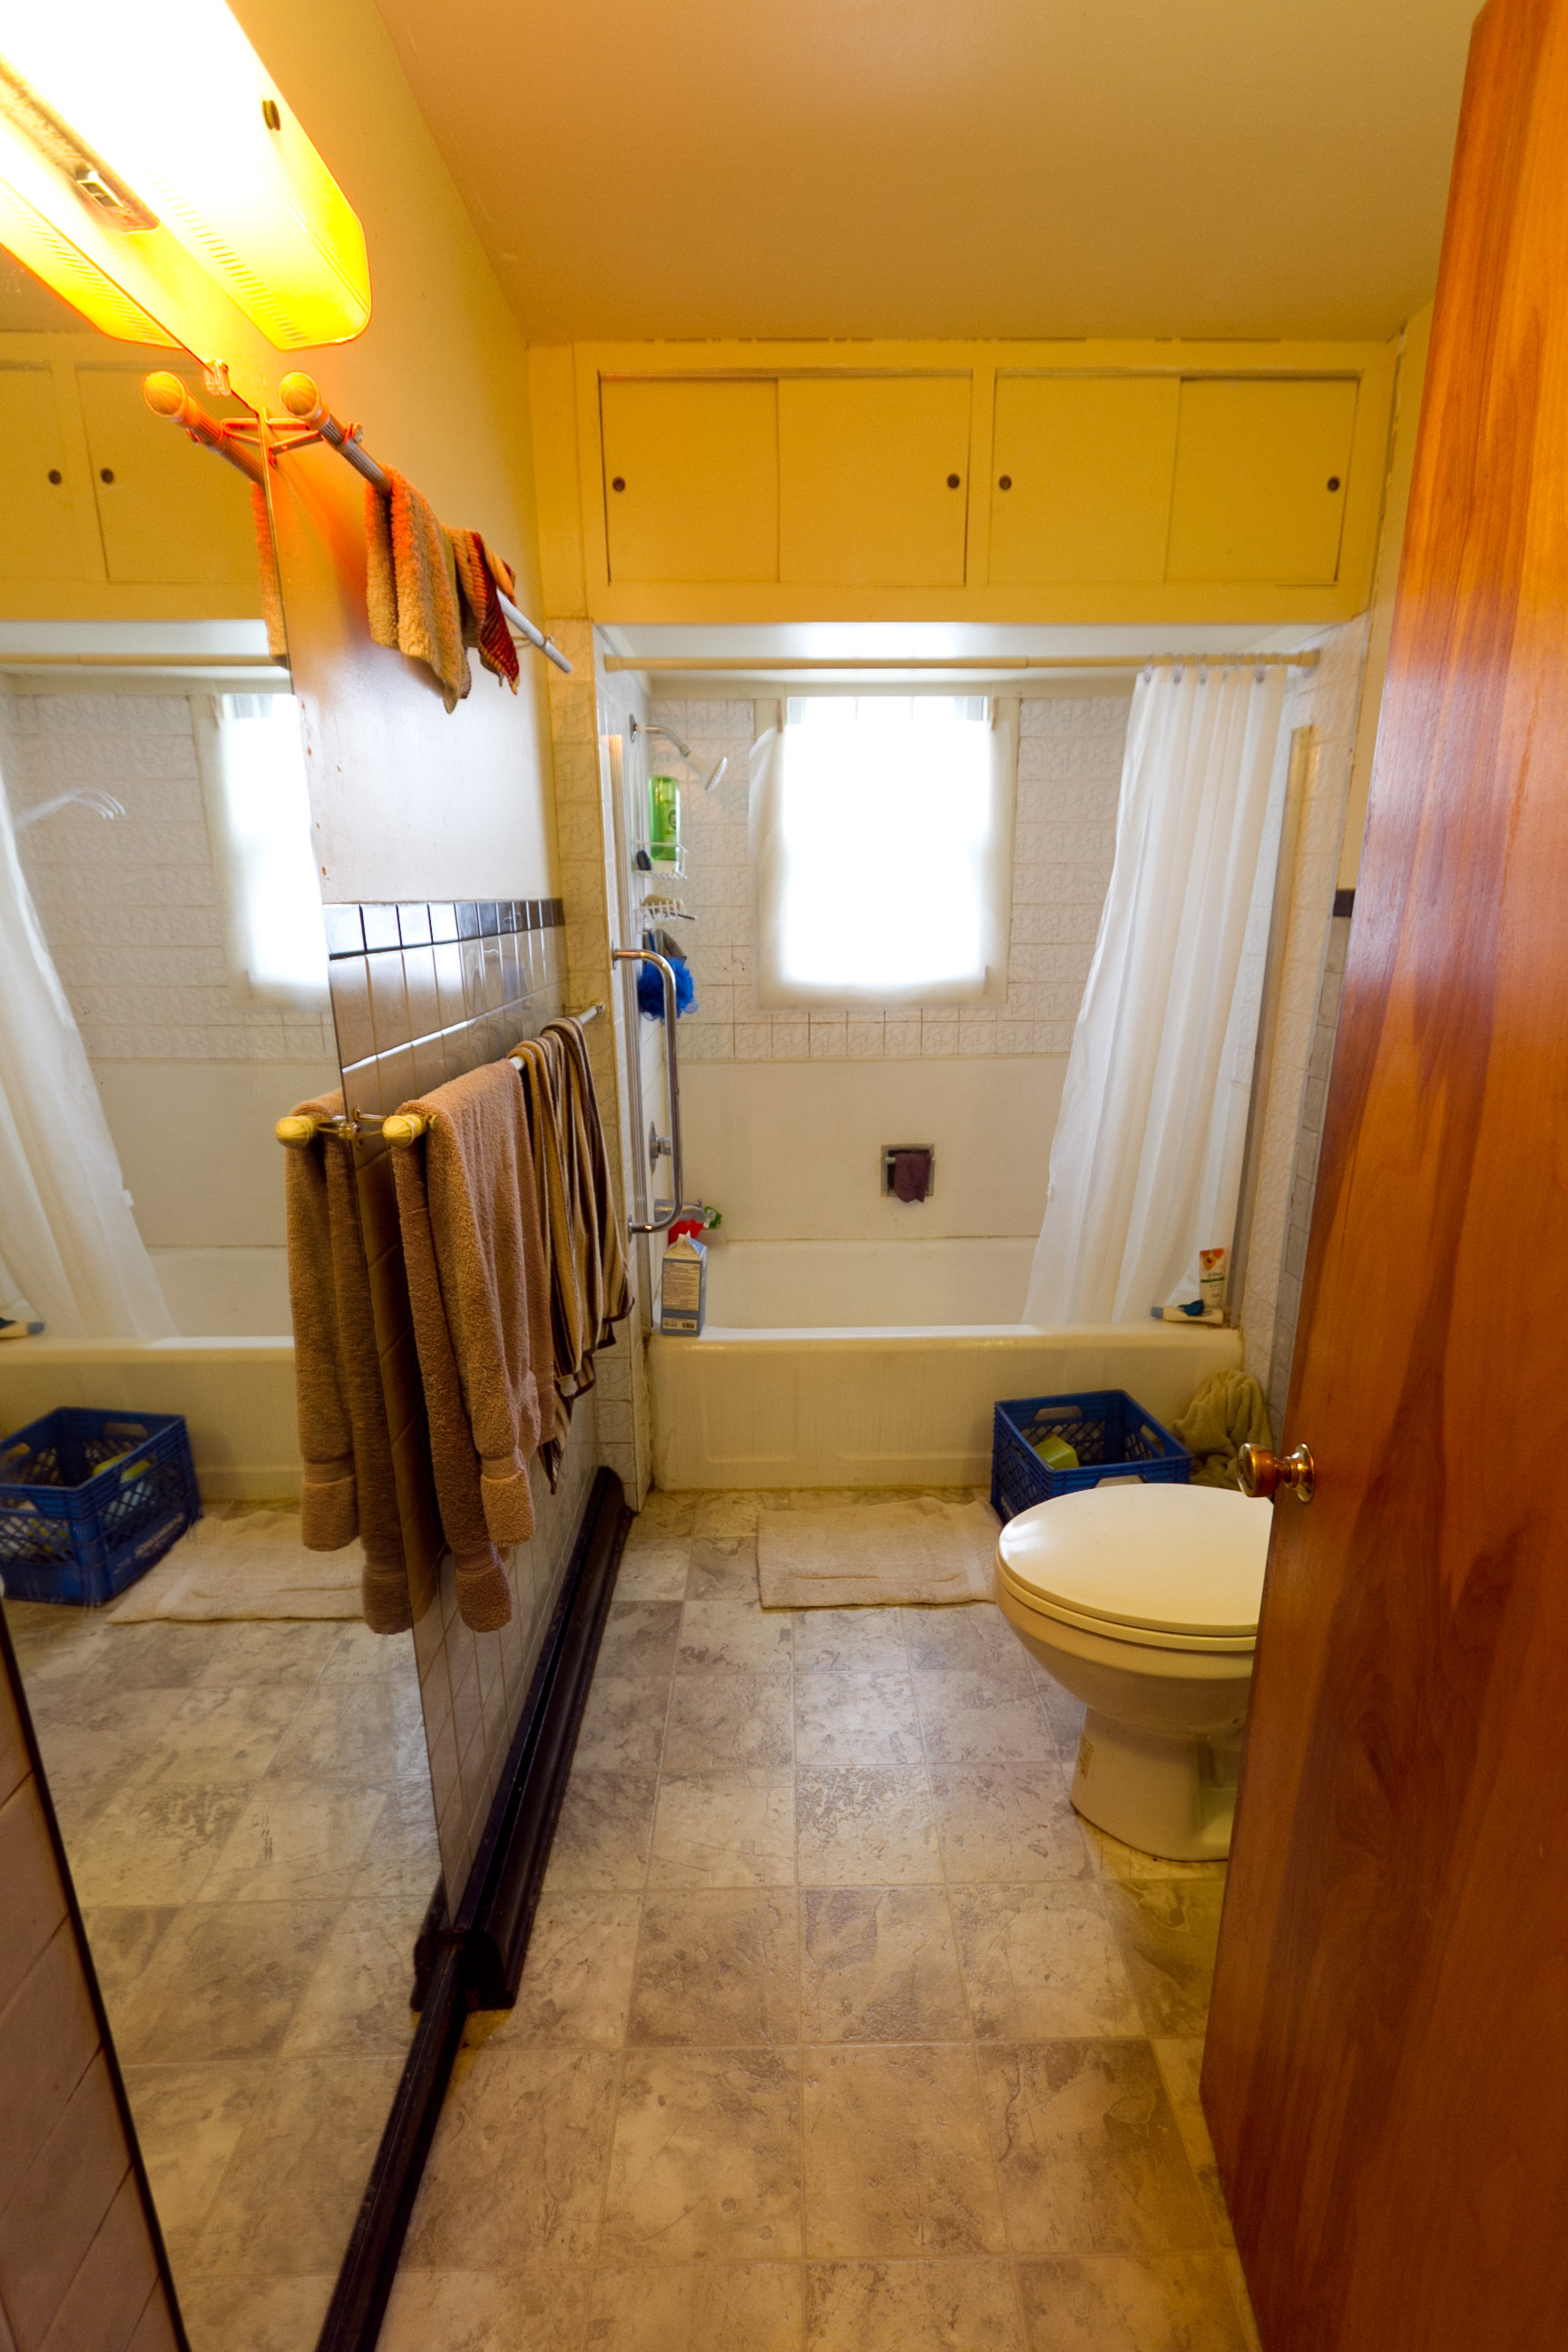 Bathroom, before being staged for sale